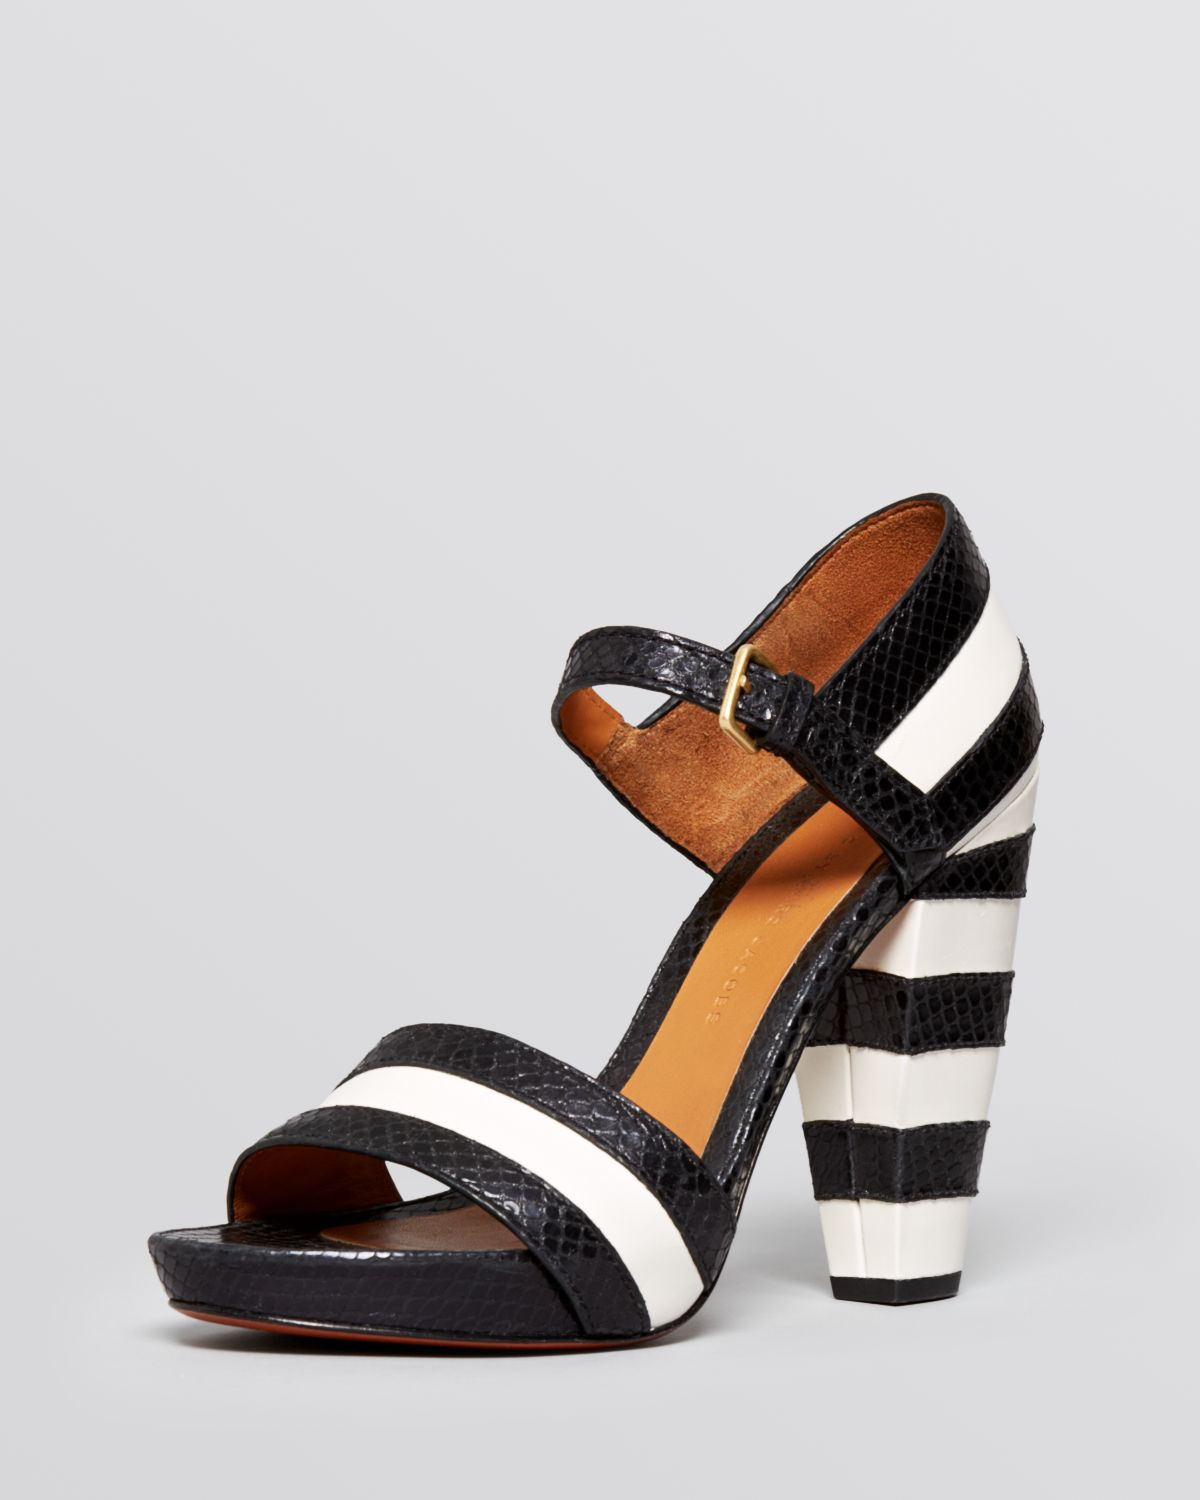 Marc by Marc Jacobs Patent Leather Slingback Sandals pay with visa for sale t4MRBKLFEQ